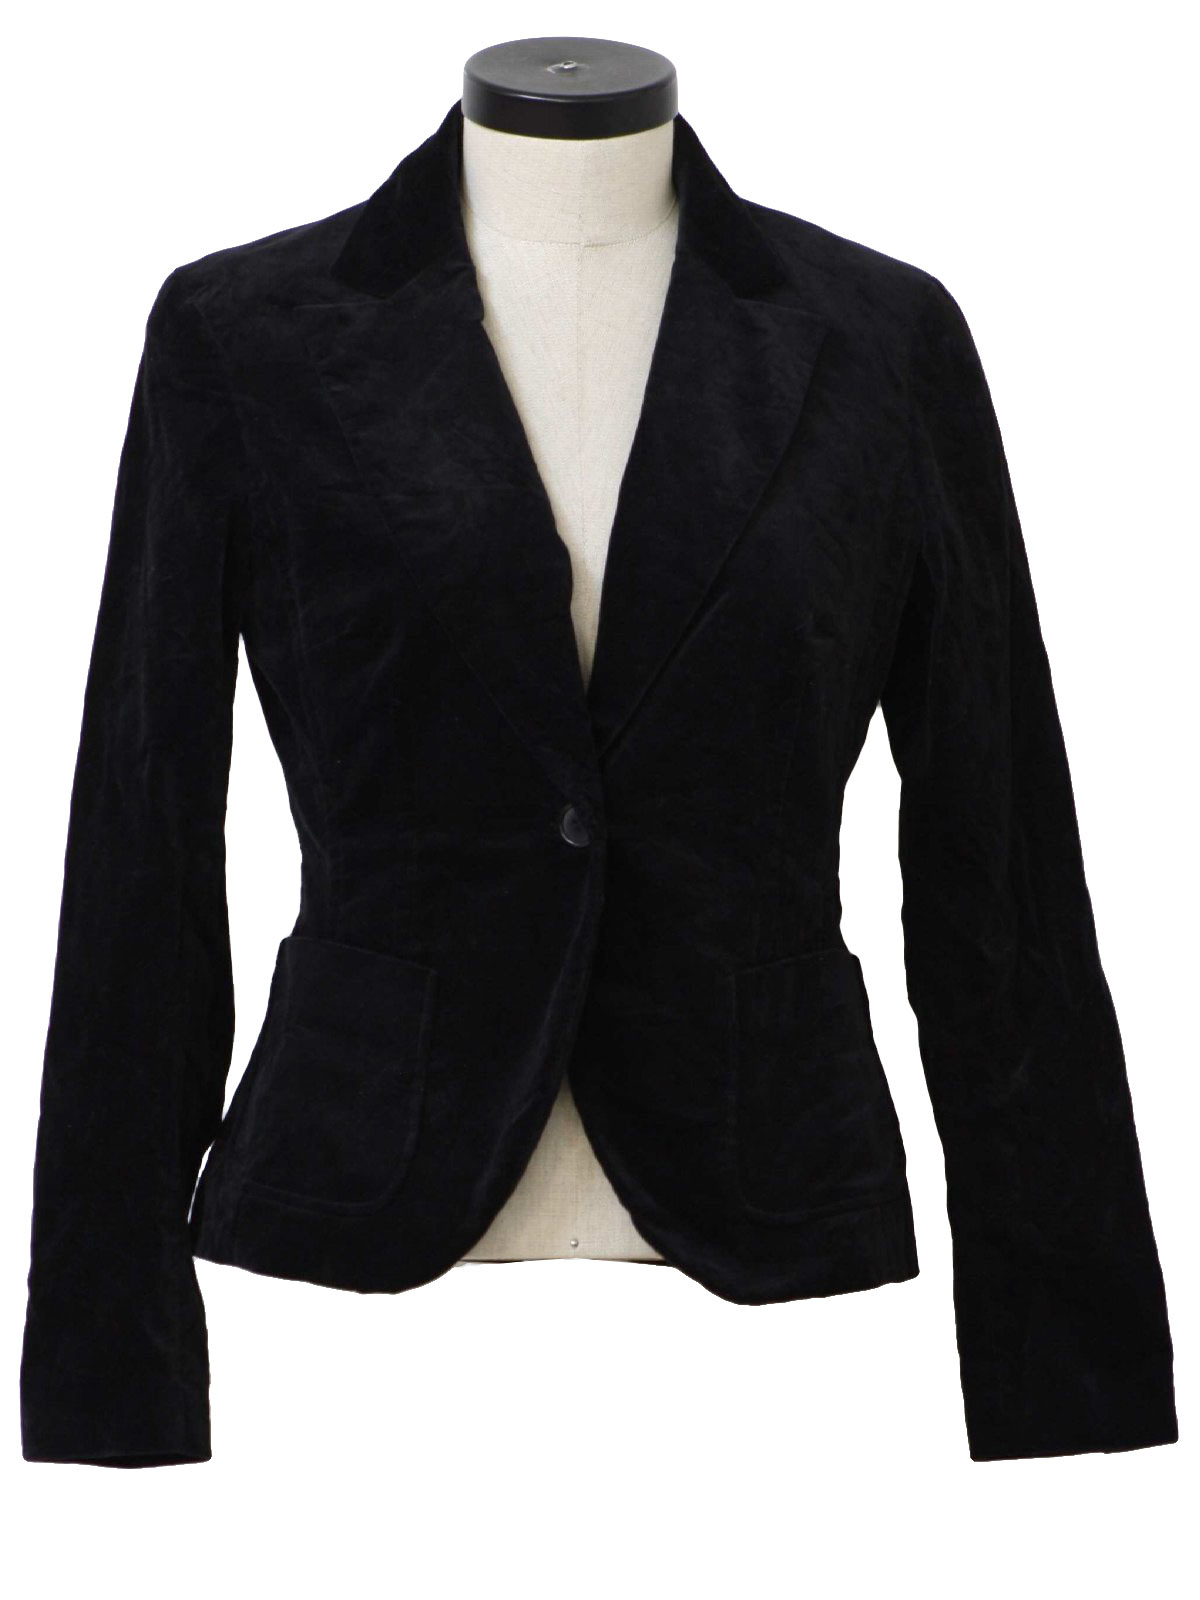 Check out our selection of basic black blazer for women, blazers black, blazers red, red blazer for women blazer white, white blazer for women. You have every color and shade to suit your fancy! Size Variety Our casual blazers also come in junior blazer jacket, plus size blazers for women /5(39).